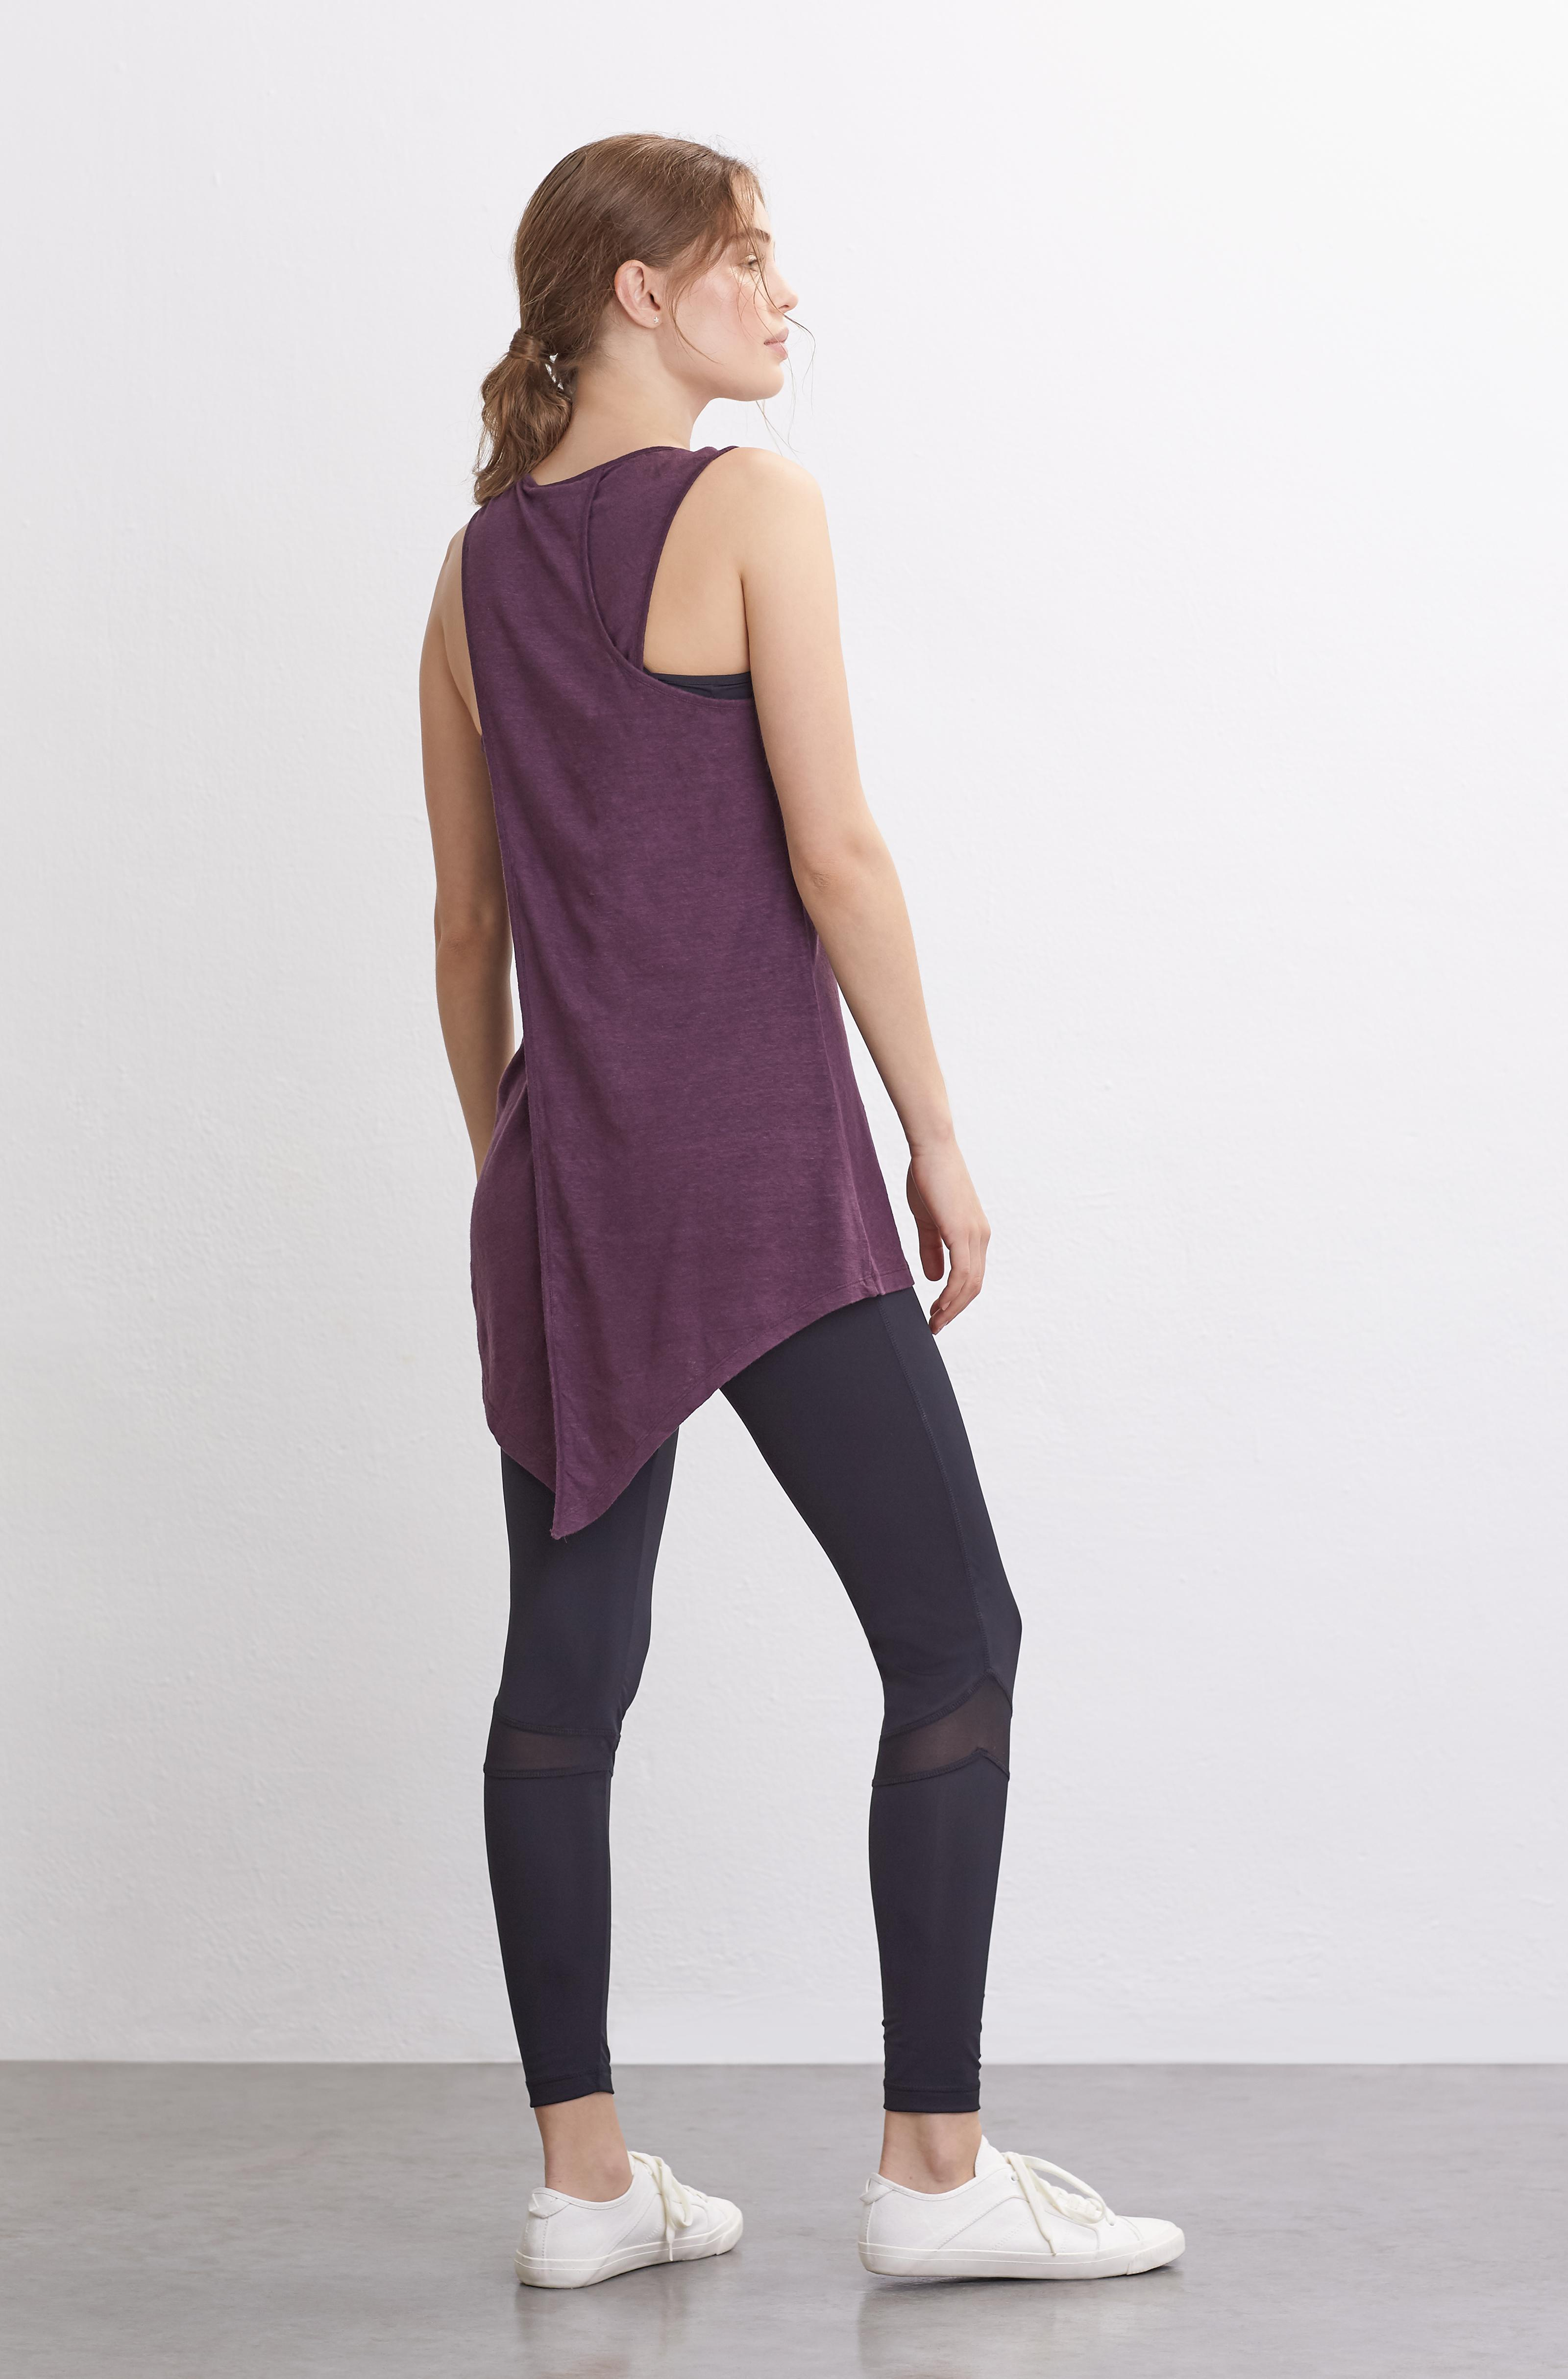 Female model with her back to the camera wearing a plum athleisure vest top with black gym leggings.